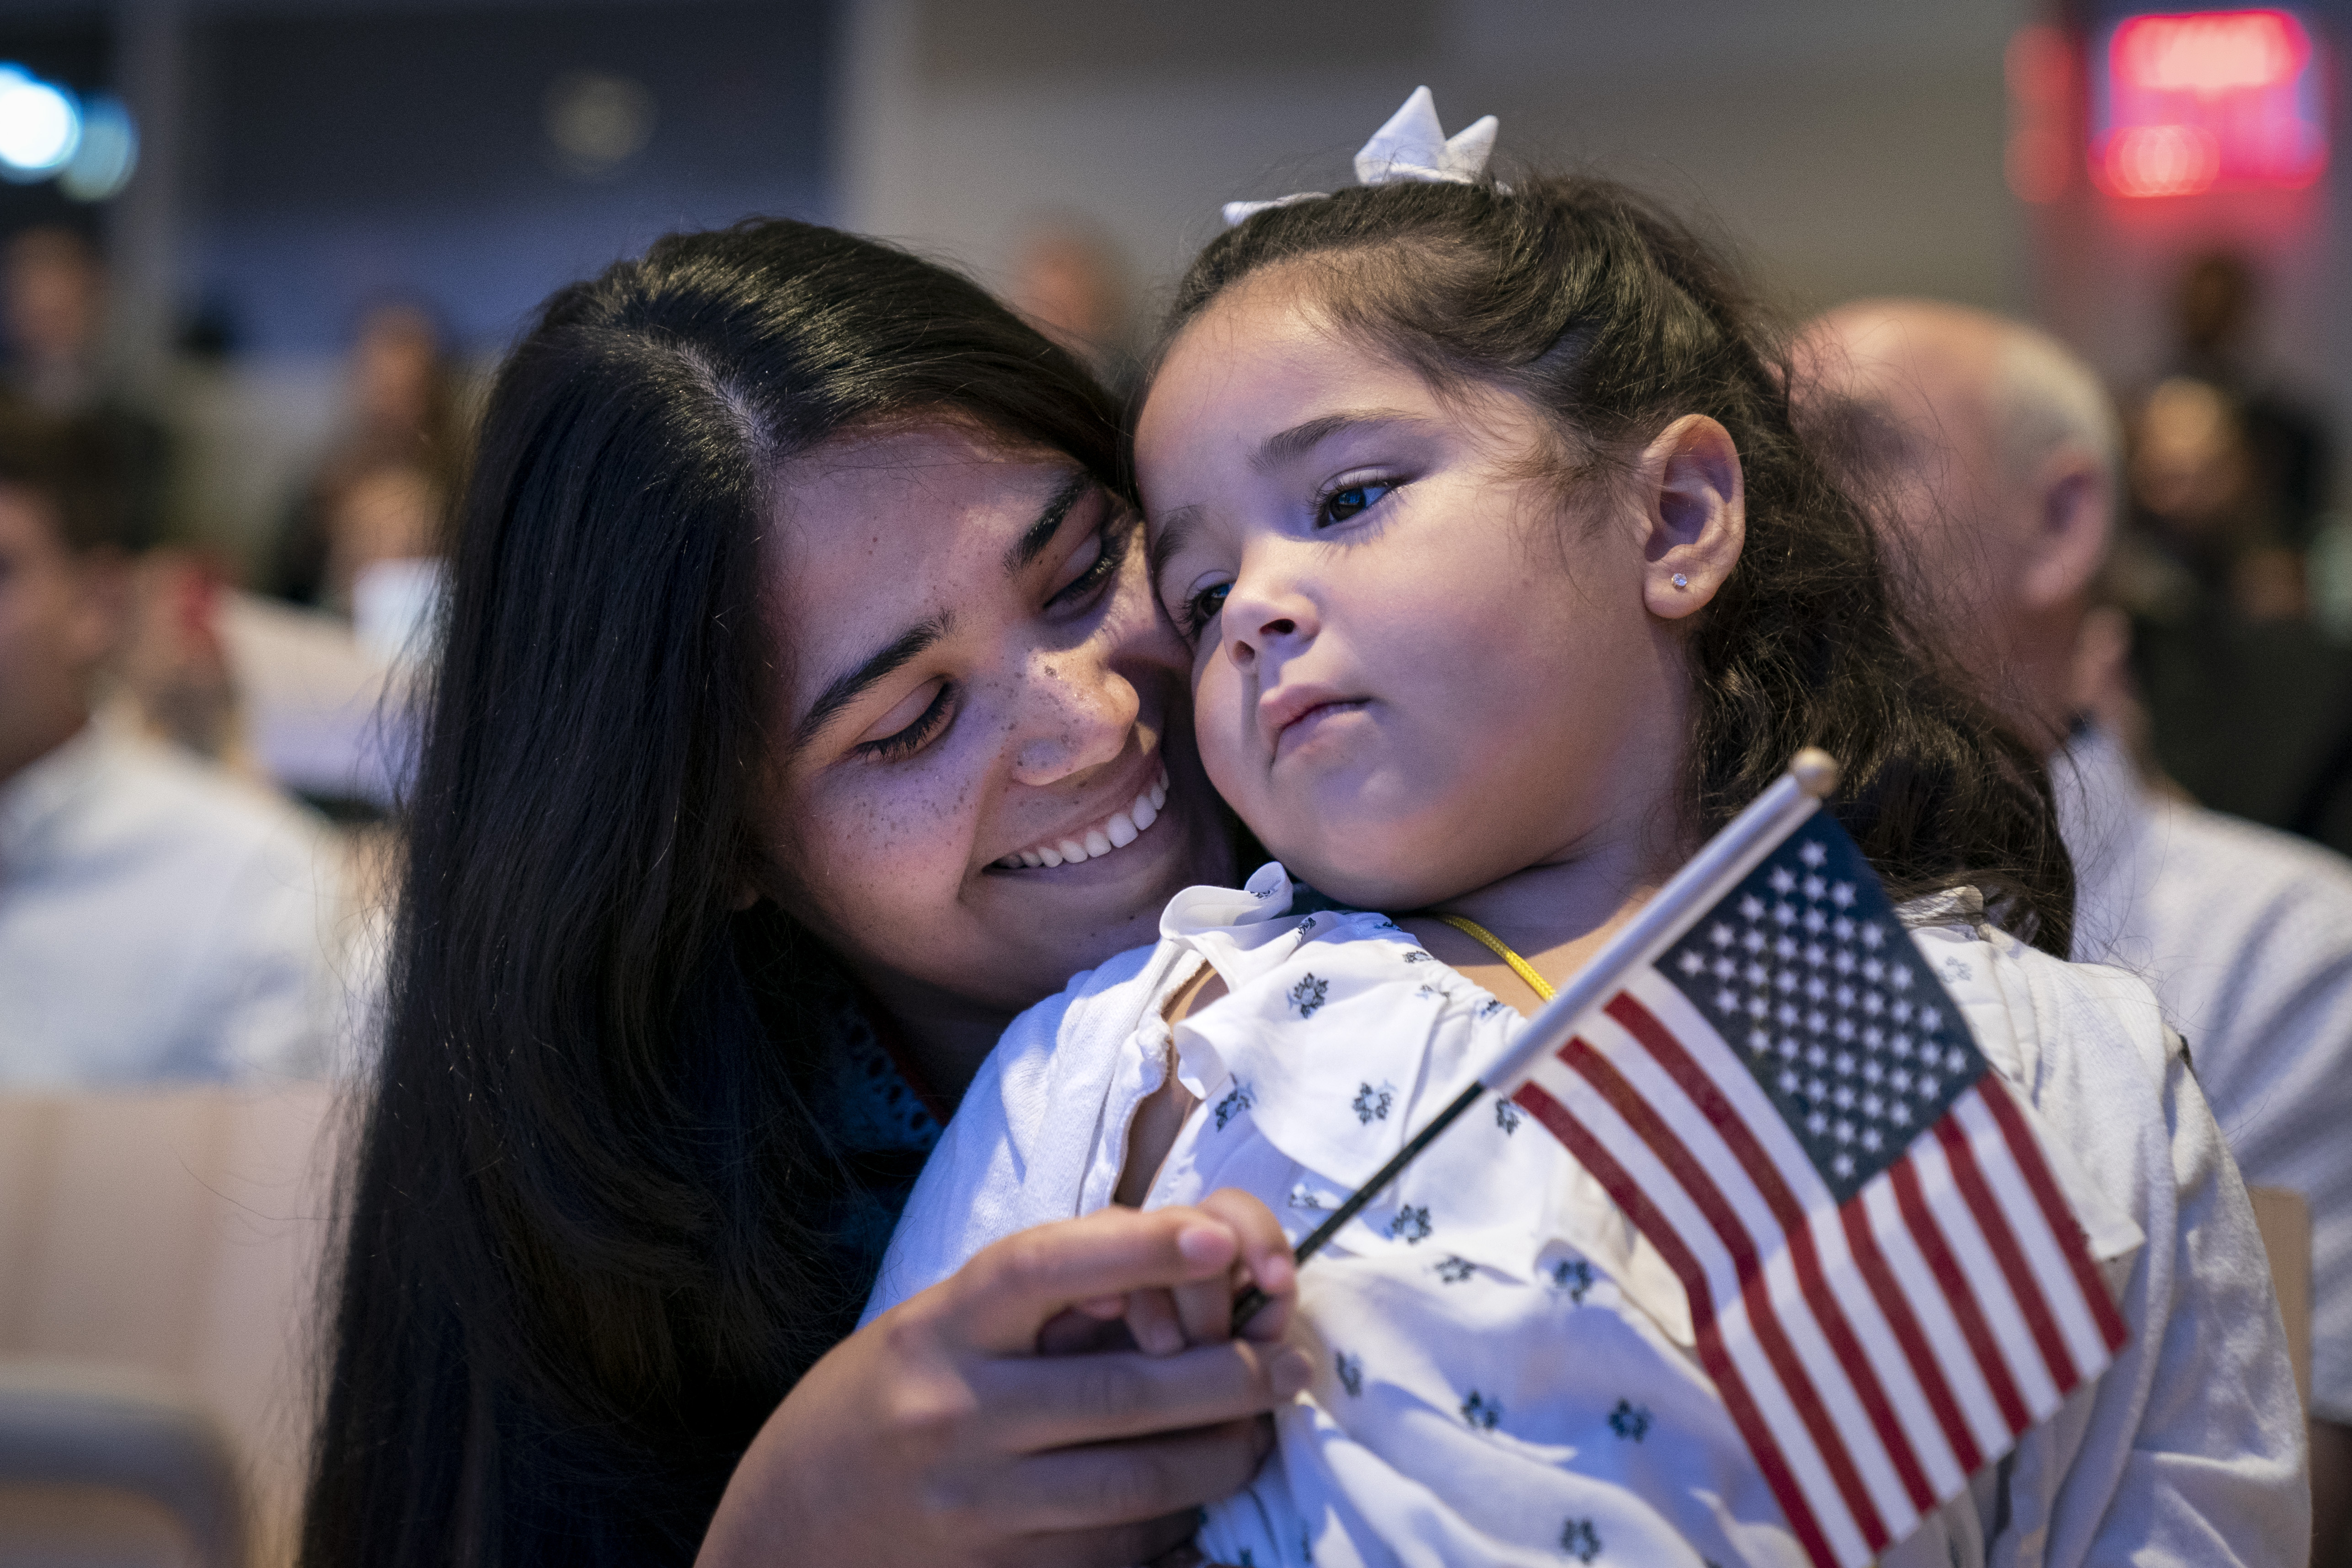 A smiling young woman holds her daughter on her lap and a small American flag in her hand.